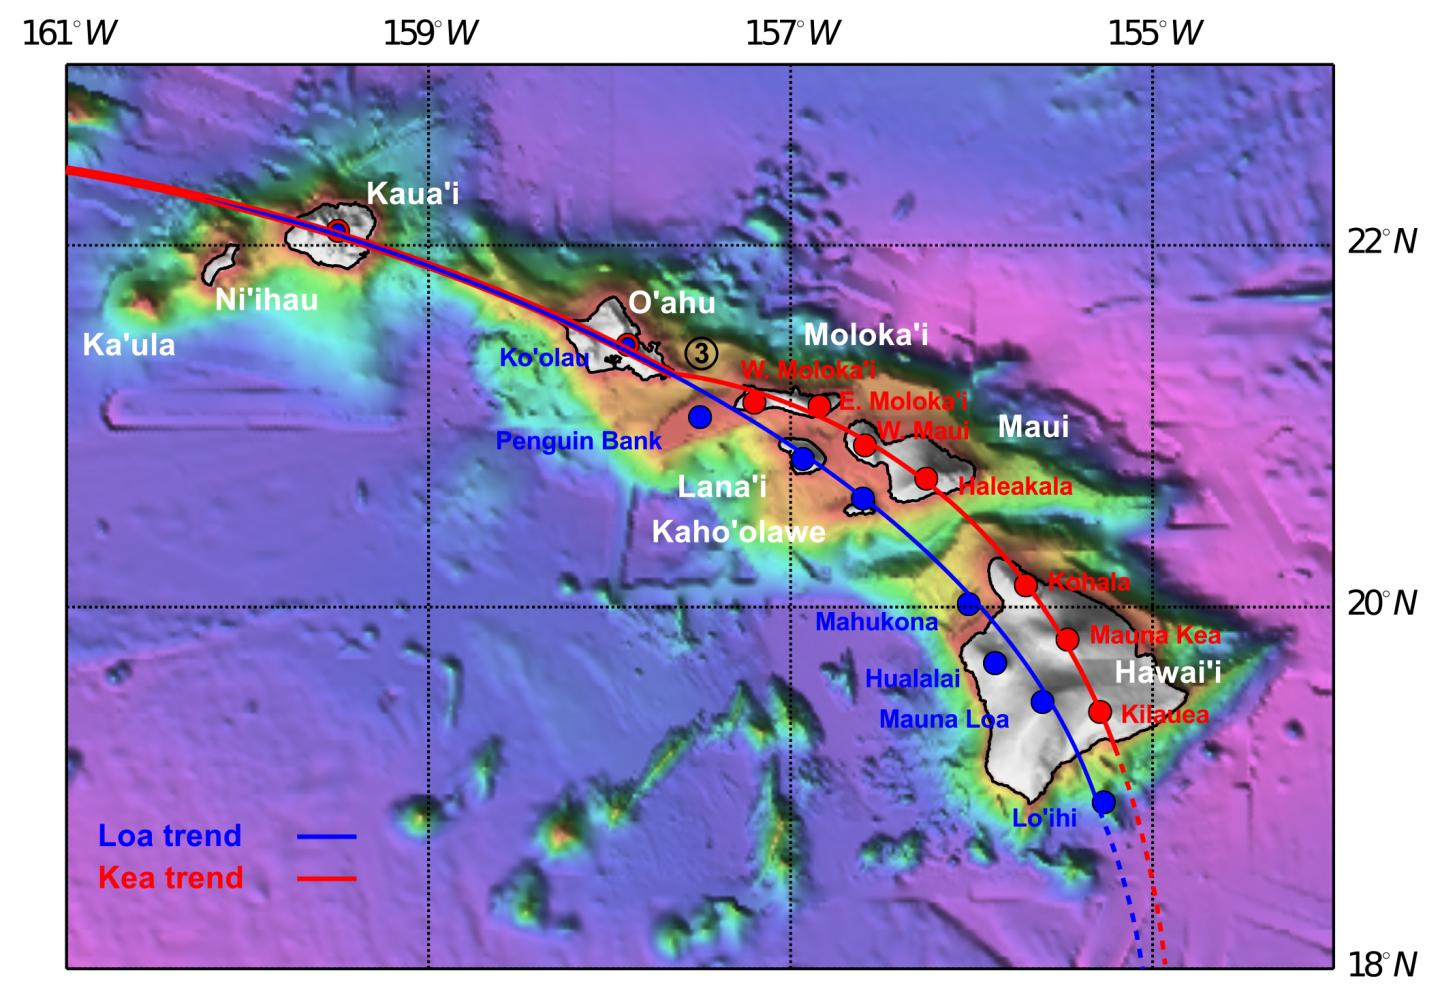 Active Volcanoes In Hawaii Map World's Biggest, Most Active Volcanoes In Hawaii Formed 3 Million